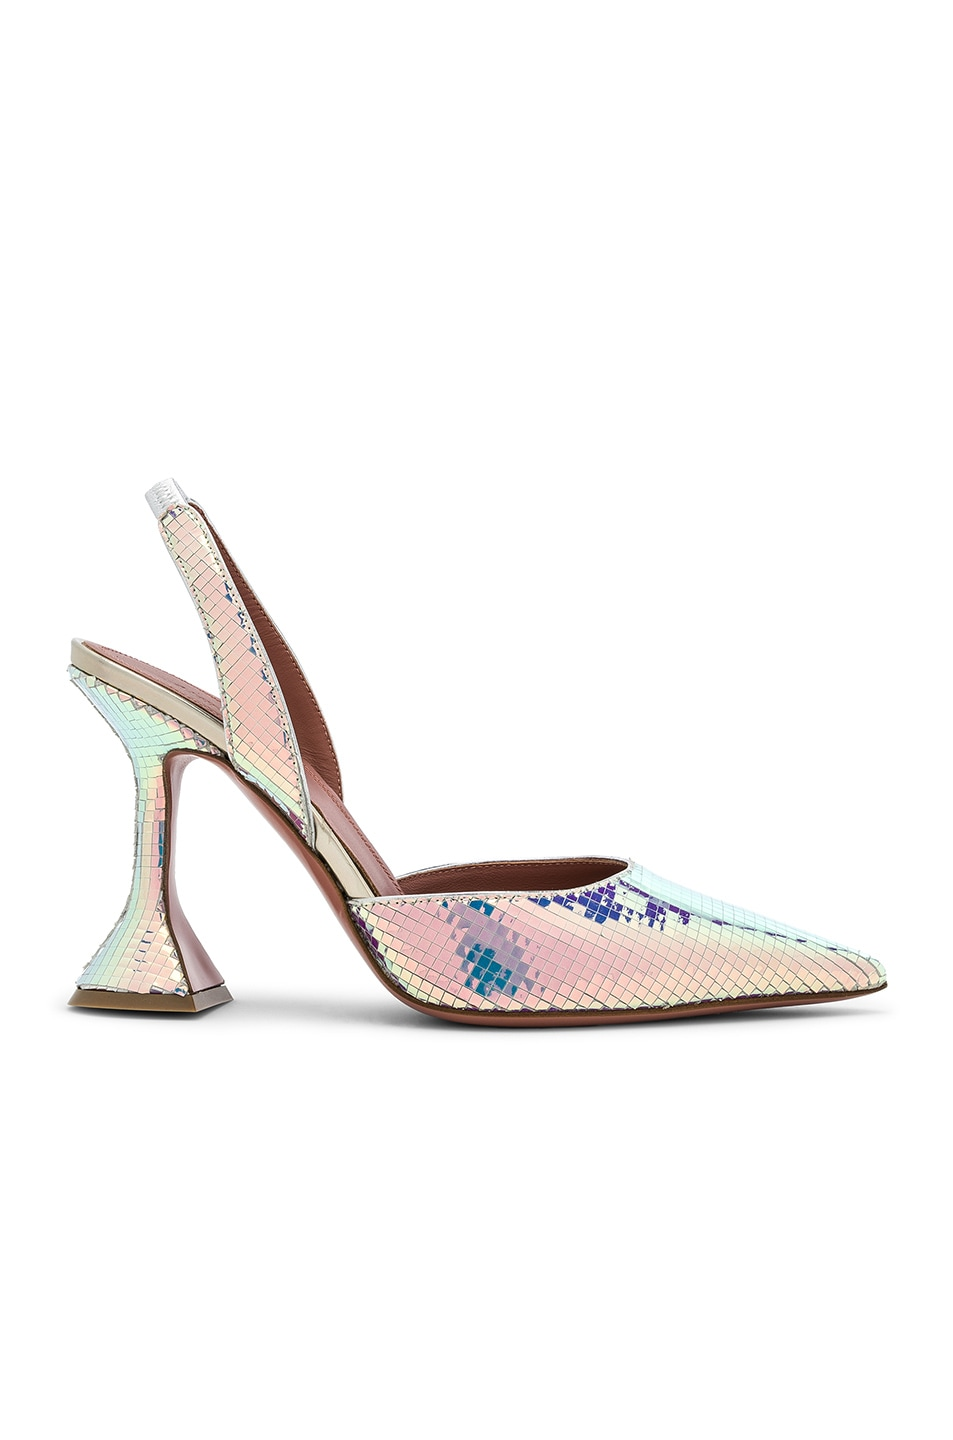 Image 1 of AMINA MUADDI Hologram Leather Holli Slingback Pumps in Disco